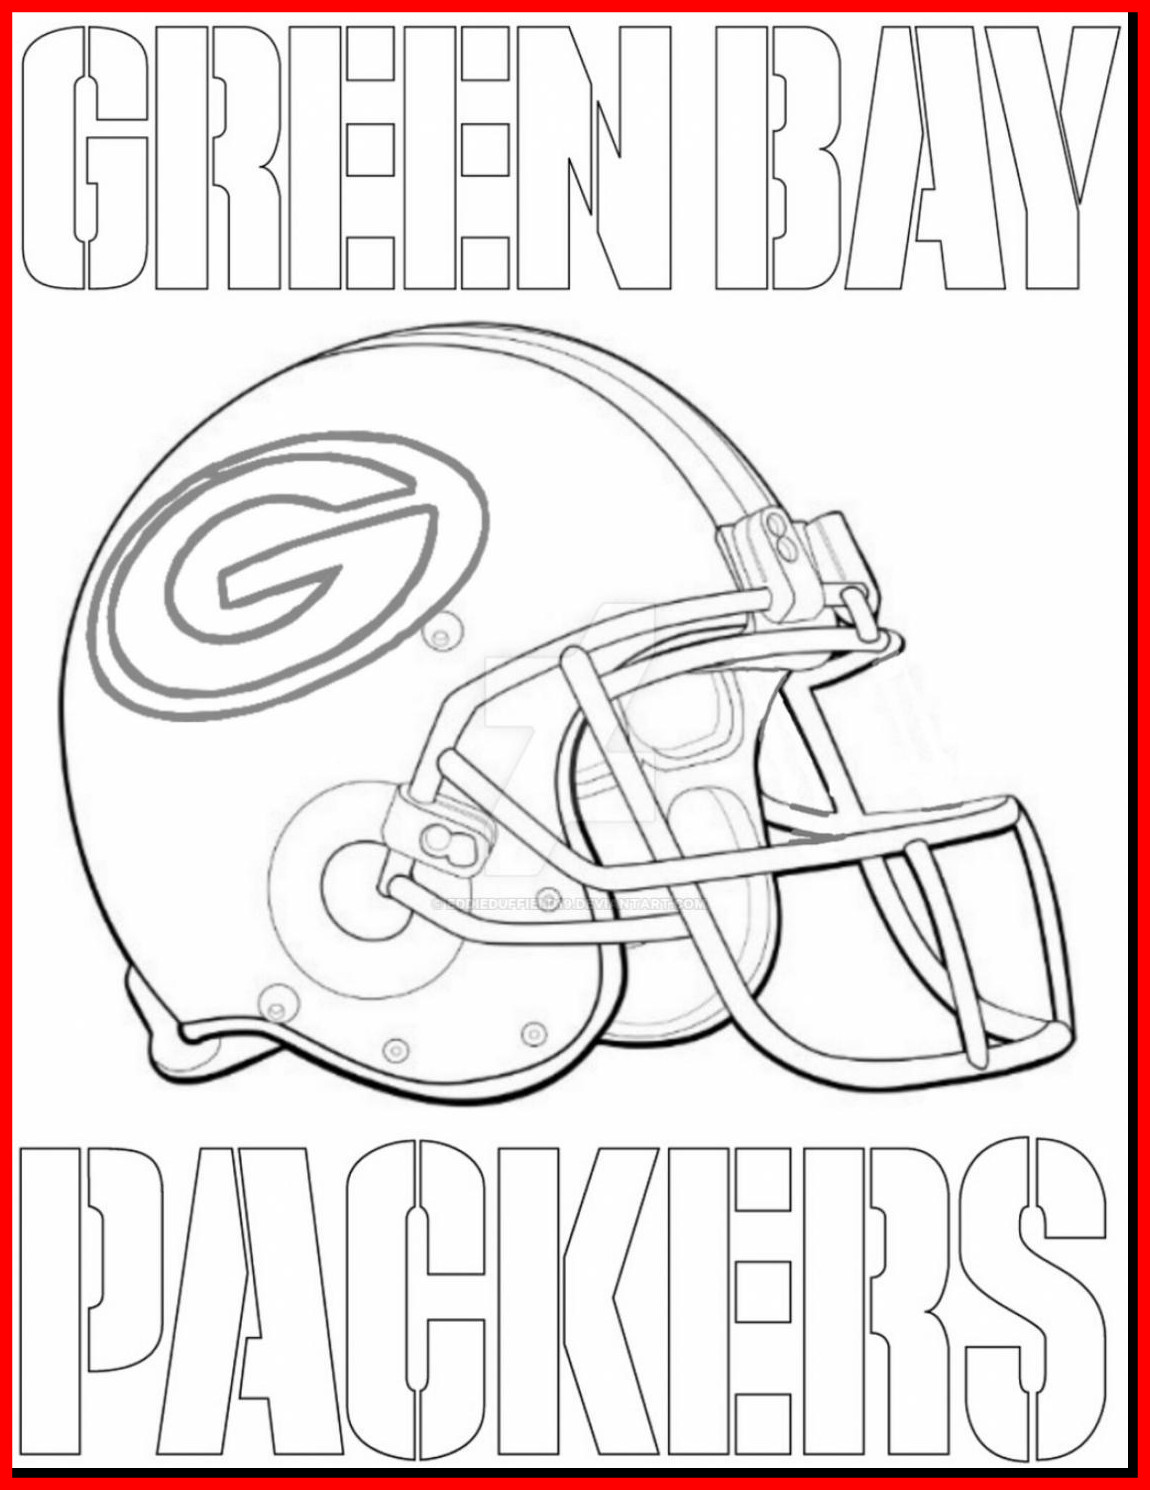 1150x1490 Stunning Football Logos Image For Tampa Bay Buccaneers Coloring